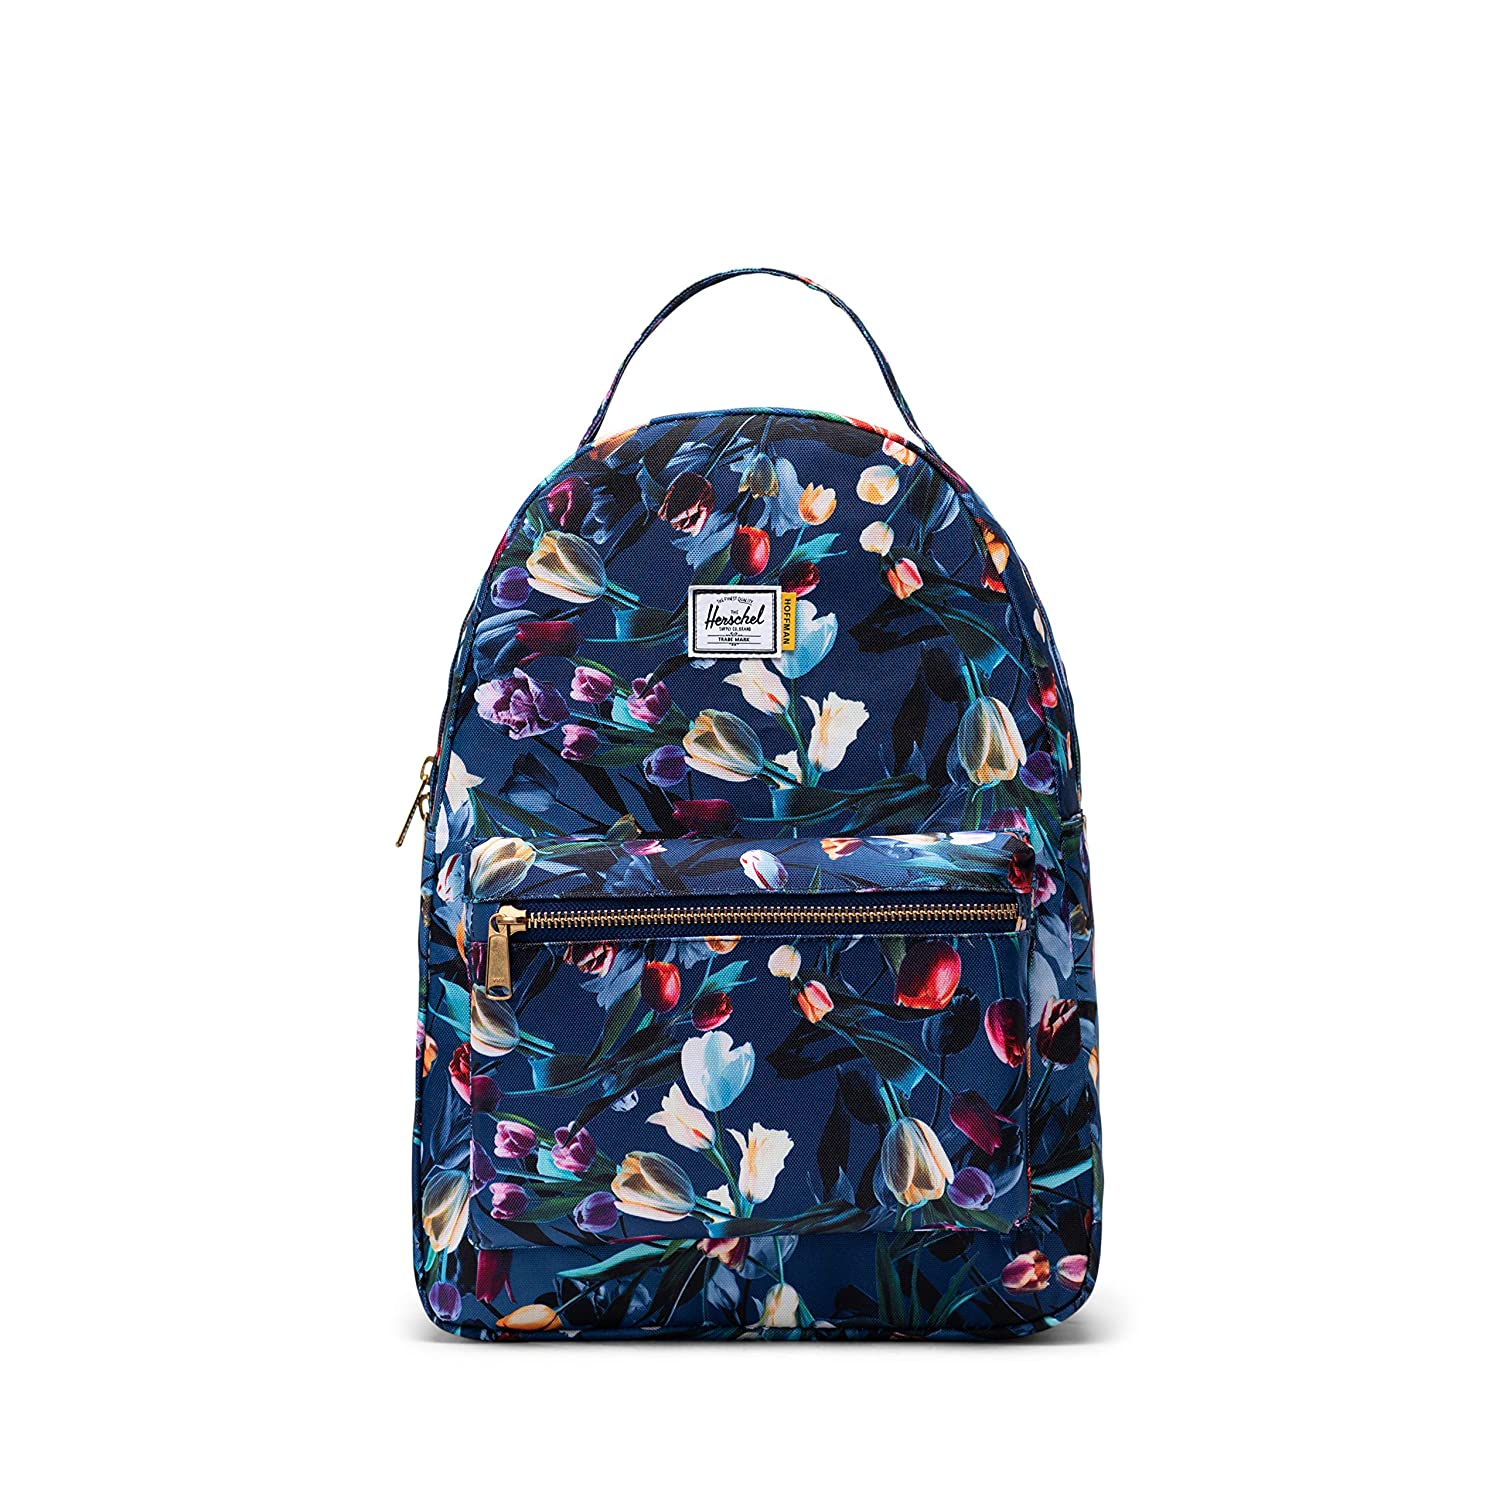 Herschel バックパック, Royal Hoffman, One Size B07GTDBCKJ